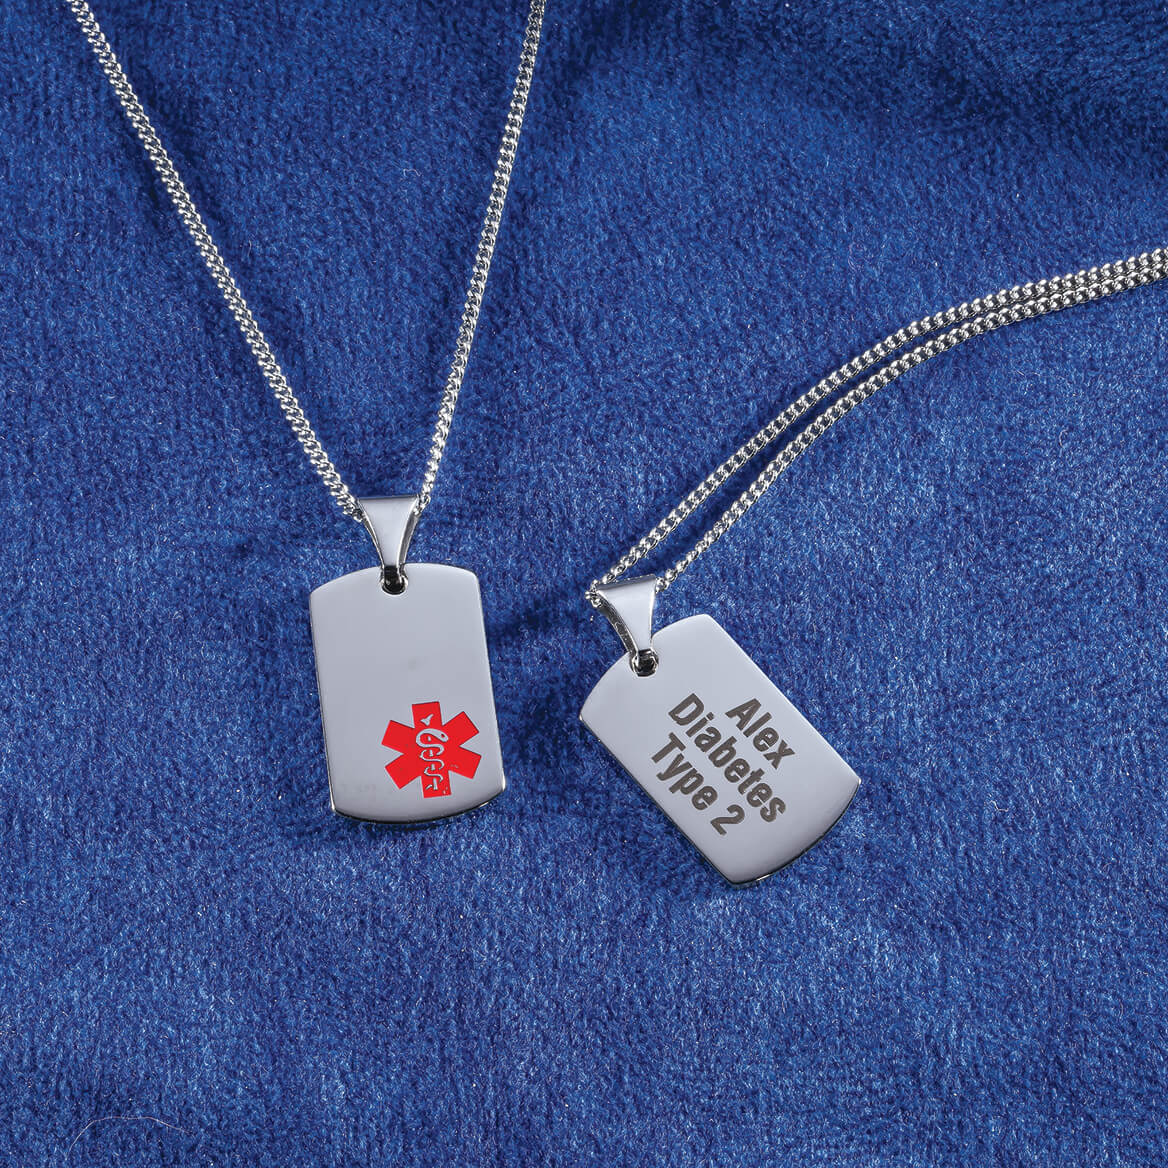 Personalized Medical ID Tag Necklace - Diabetic Necklace ...